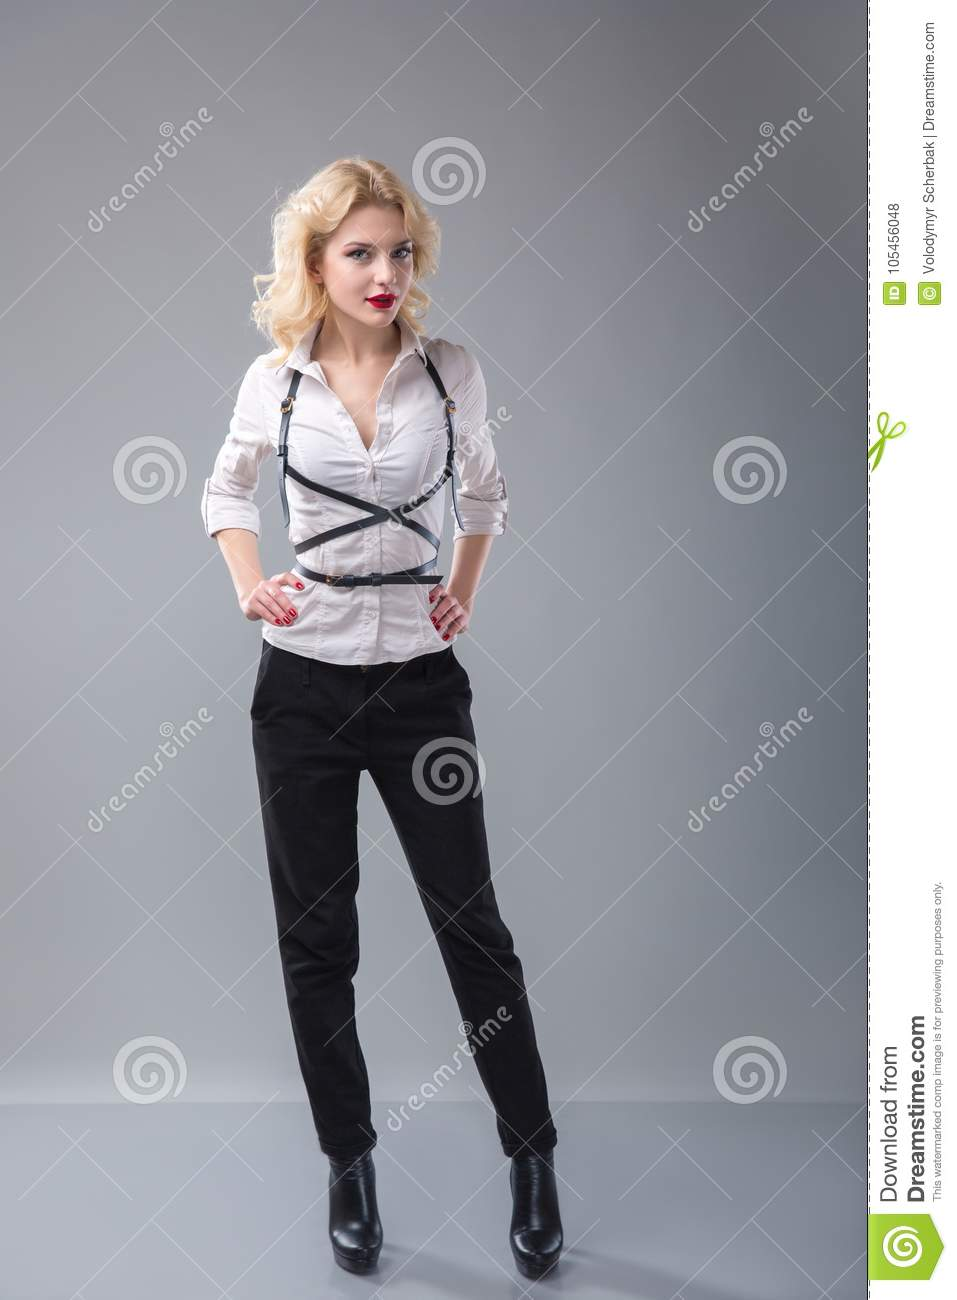 f2b01924e Studio portrait of a young blonde woman wearing white shirt with suspenders  or belts over grey background